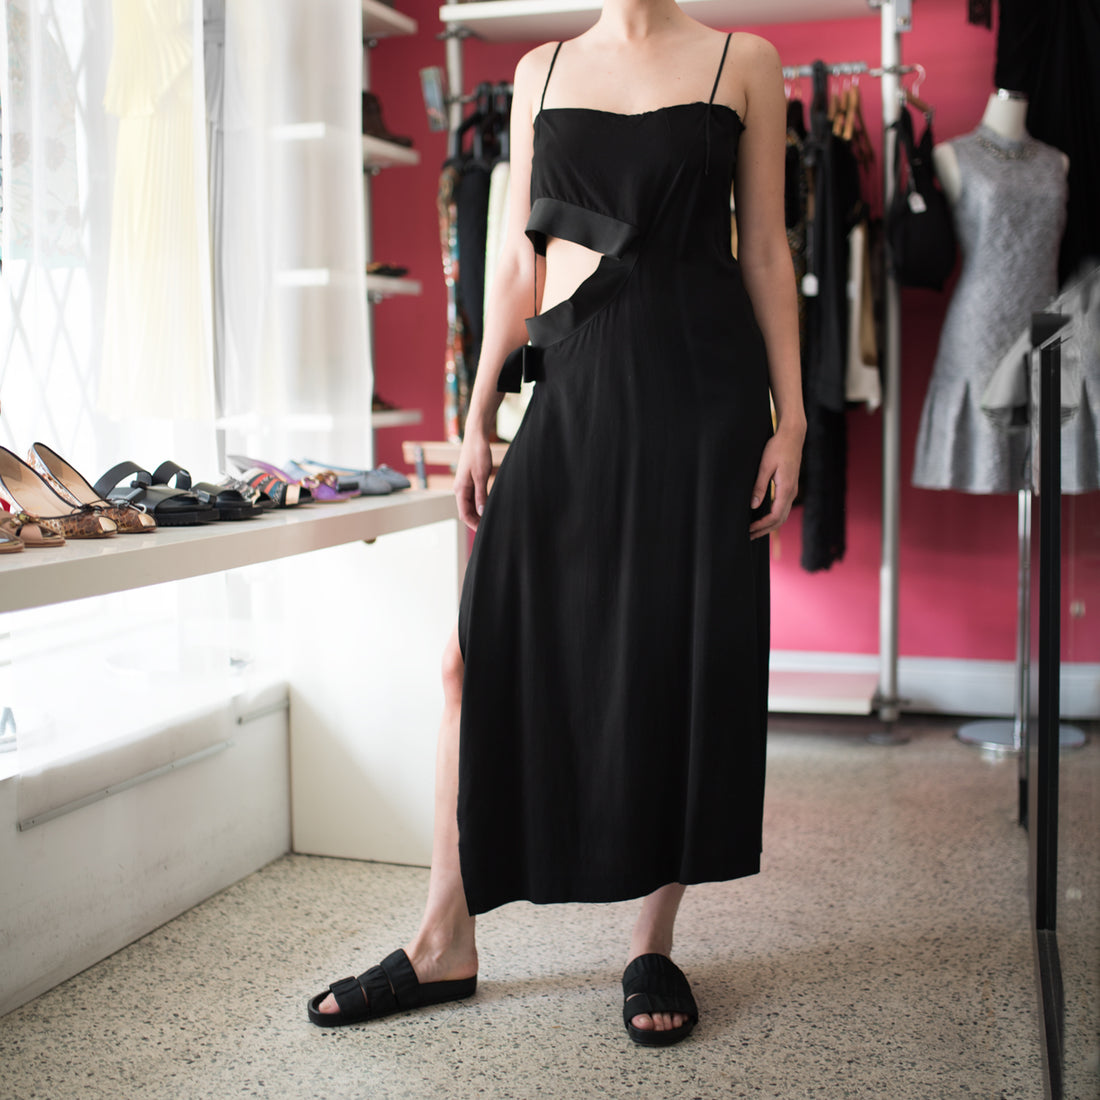 Yohji Yamamoto Black Long Column Dress with Cut out Waist Design